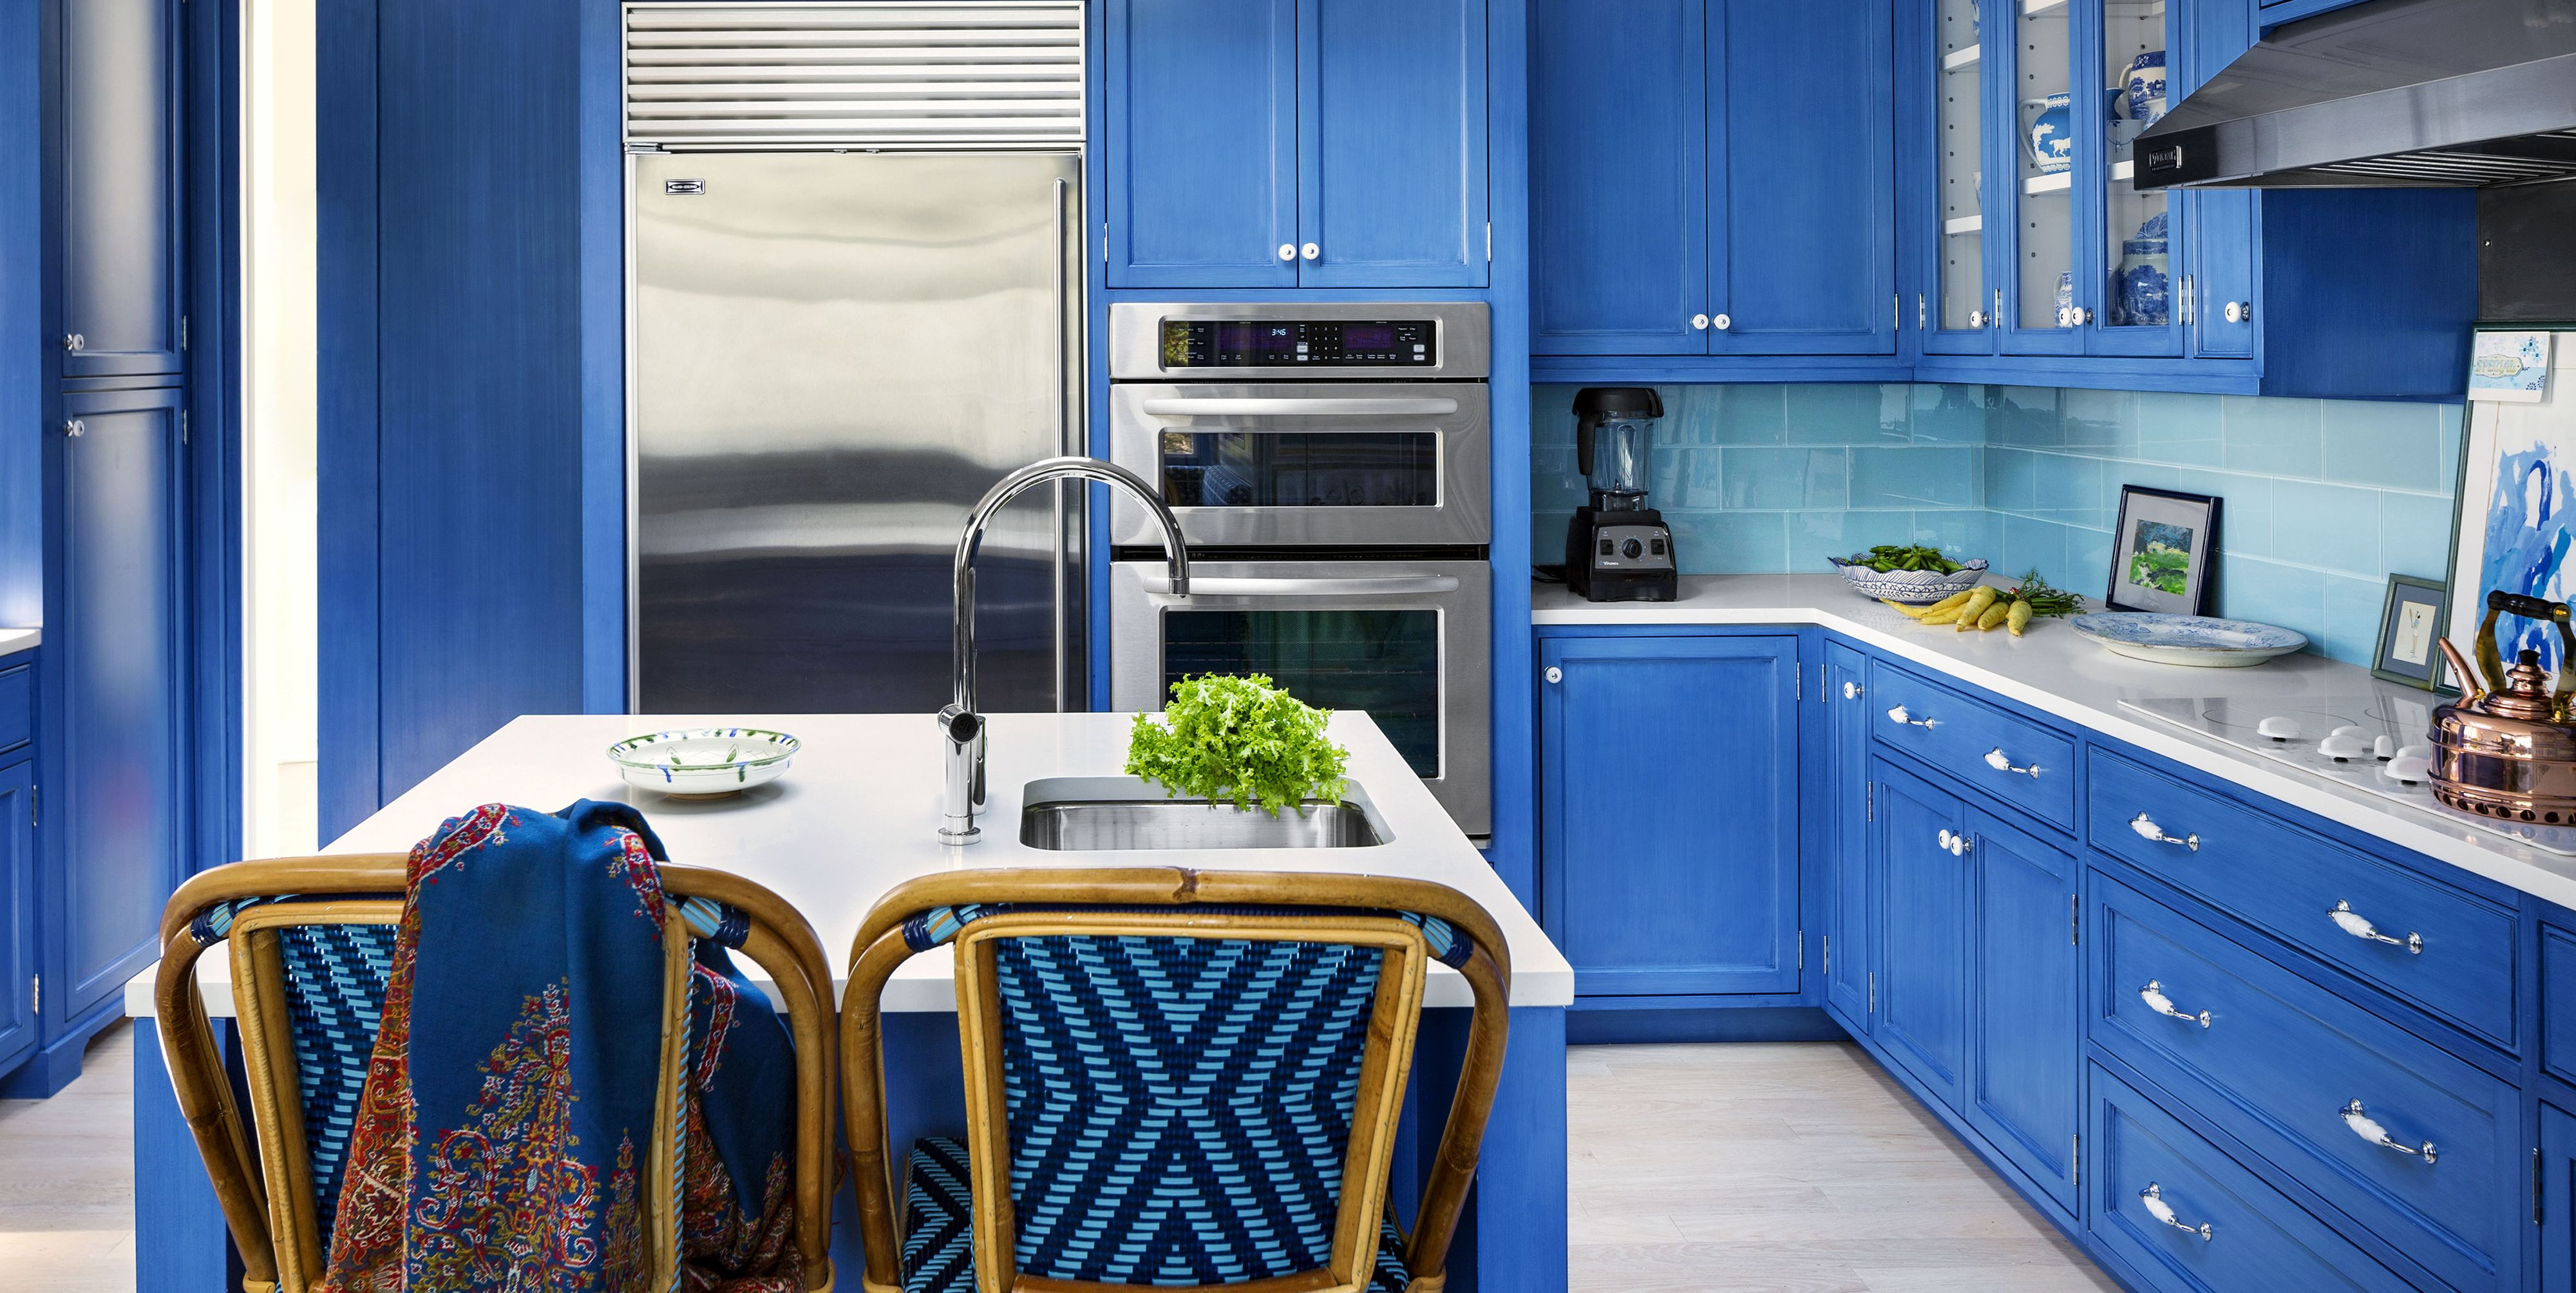 blue kitchen design ideas 15 blue kitchen design ideas blue kitchen walls 4825